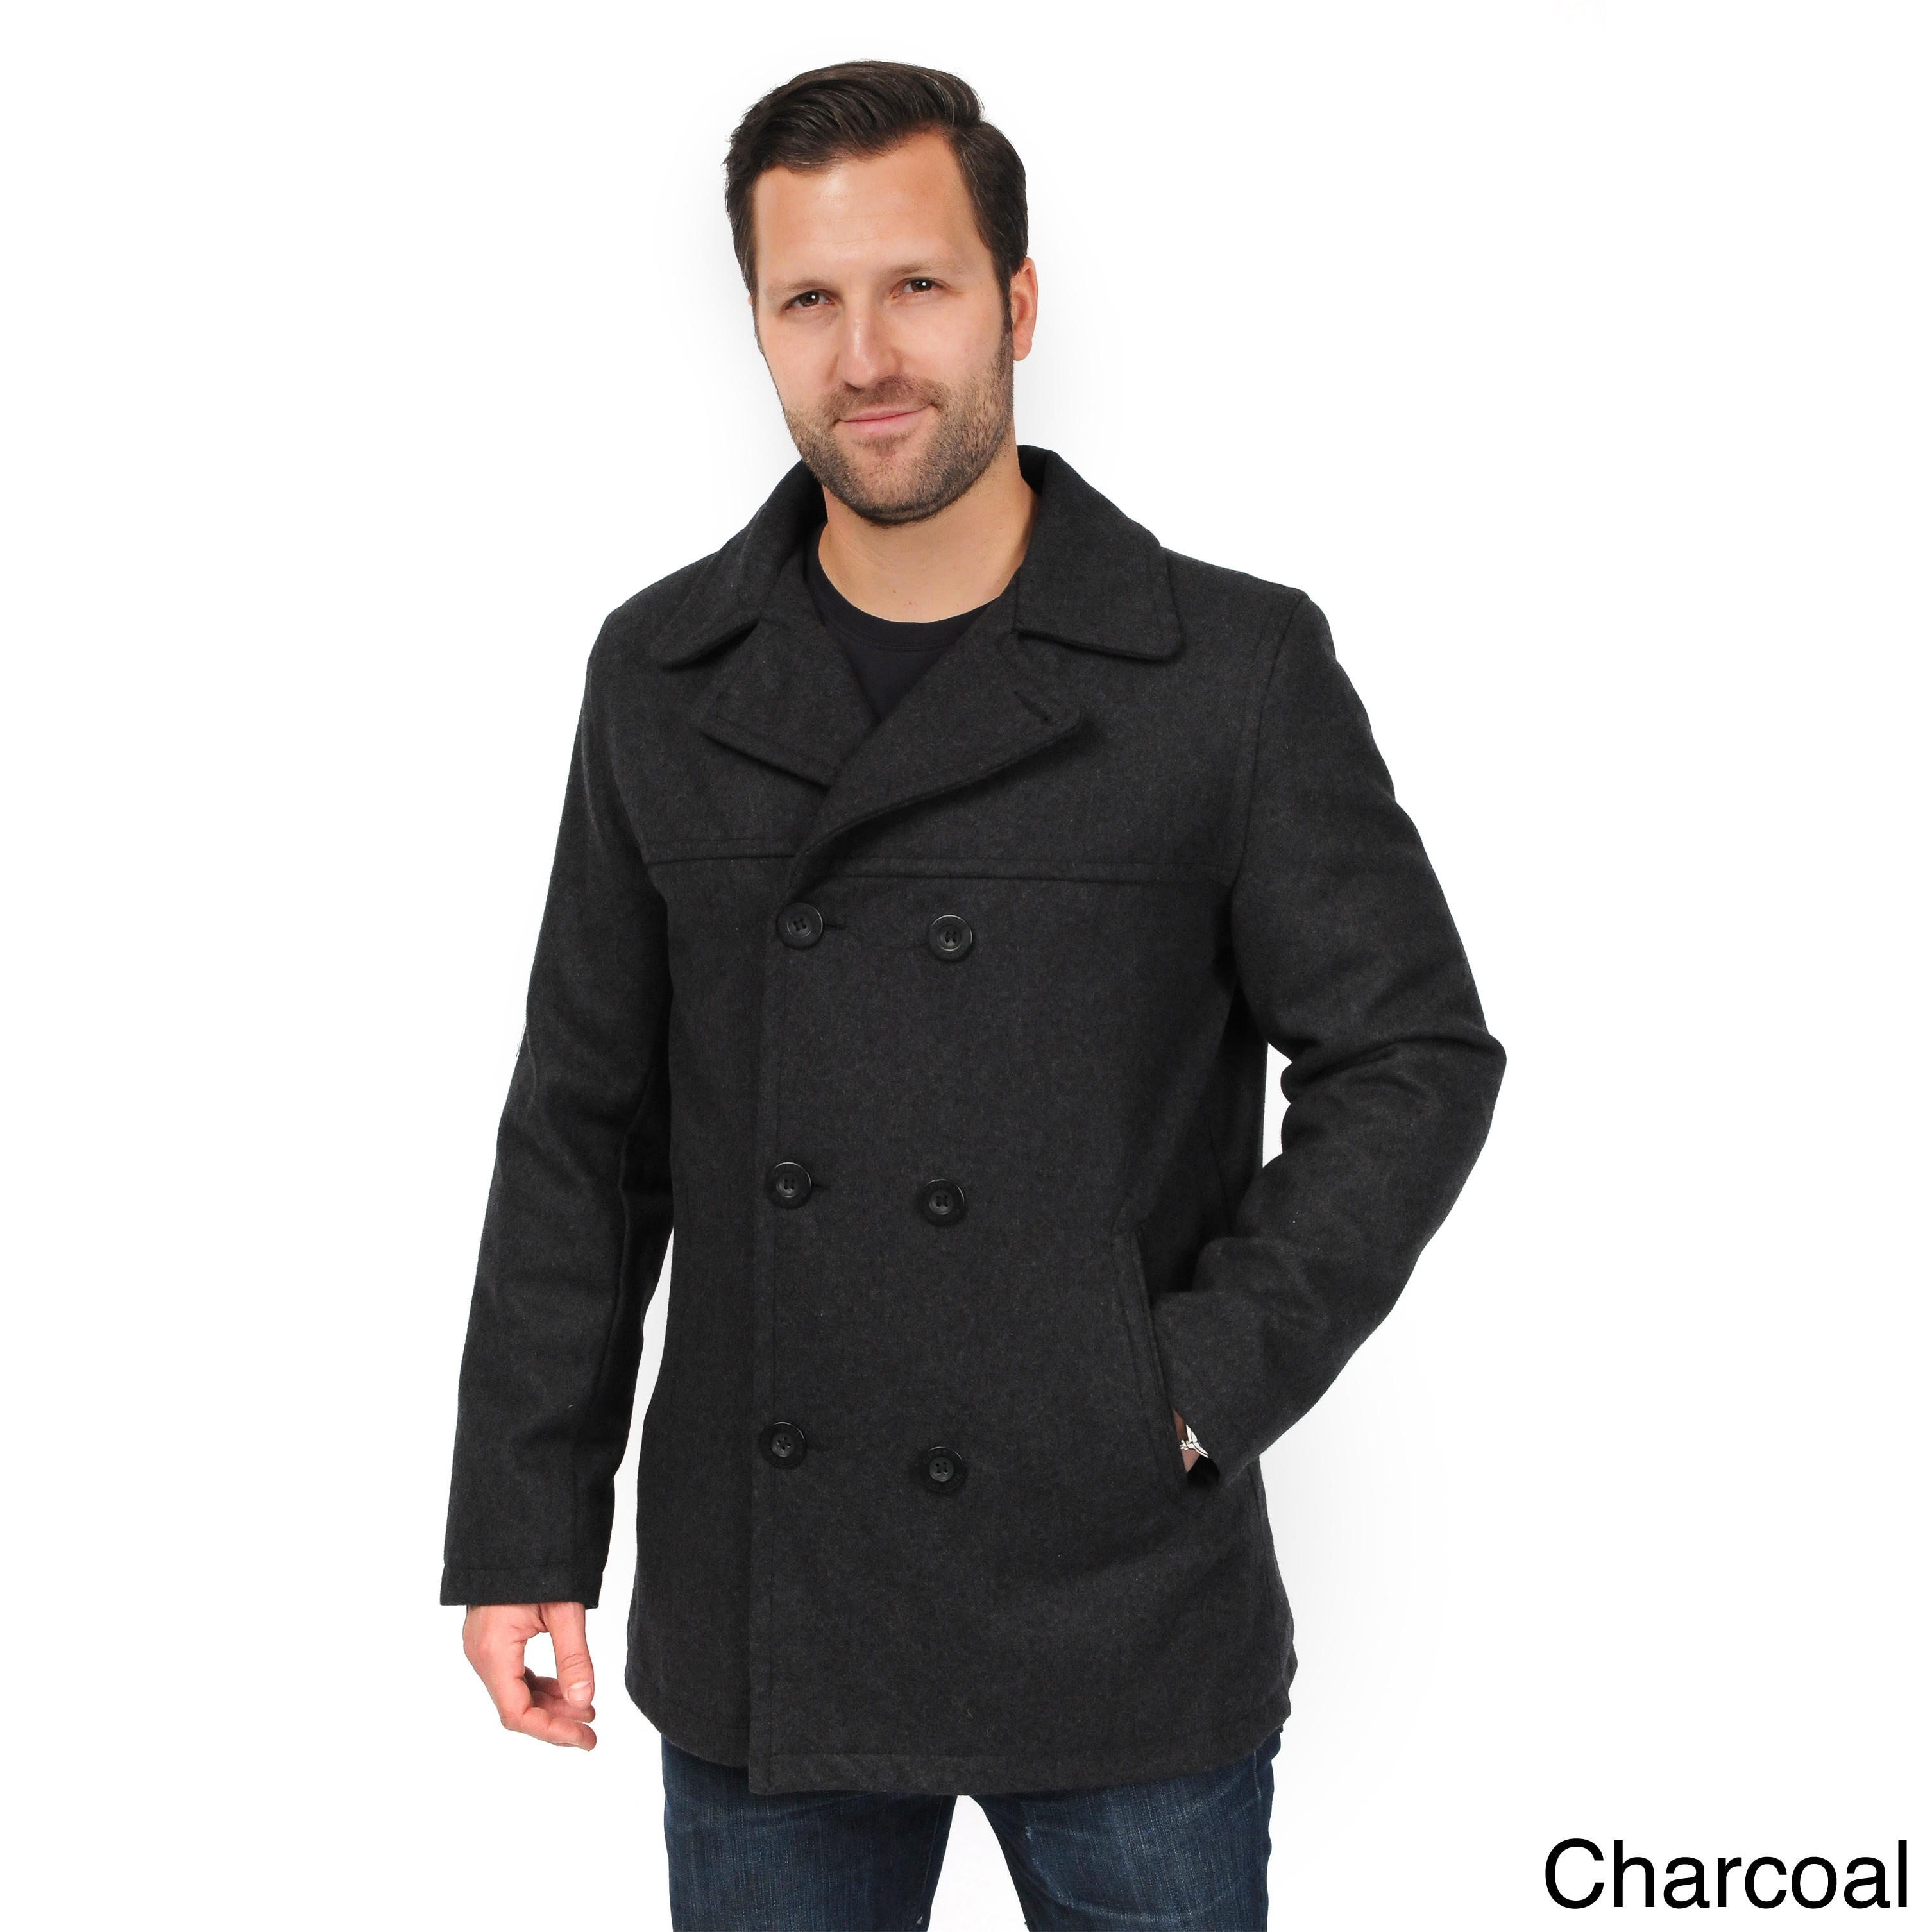 b25fbf0b08bc Shop EXcelled Men s Double Breasted Tall Peacoat - Free Shipping ...